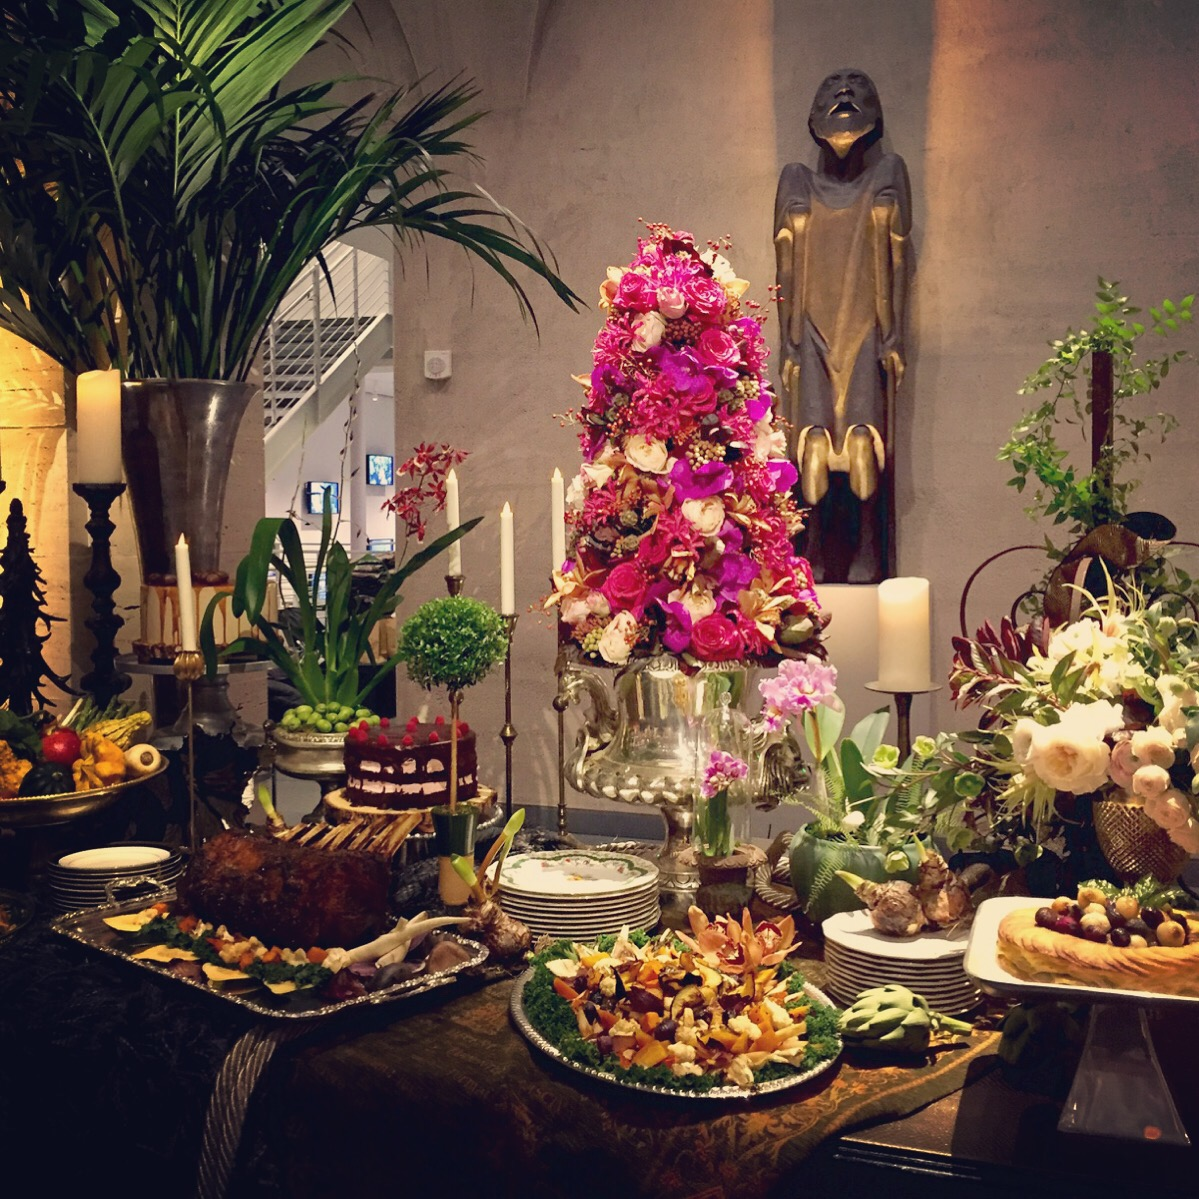 Behind the scenes at our bliss style shoot our floral topiary making a beautiful statement alongside the catered affairs gorgeous food display izmirmasajfo Gallery